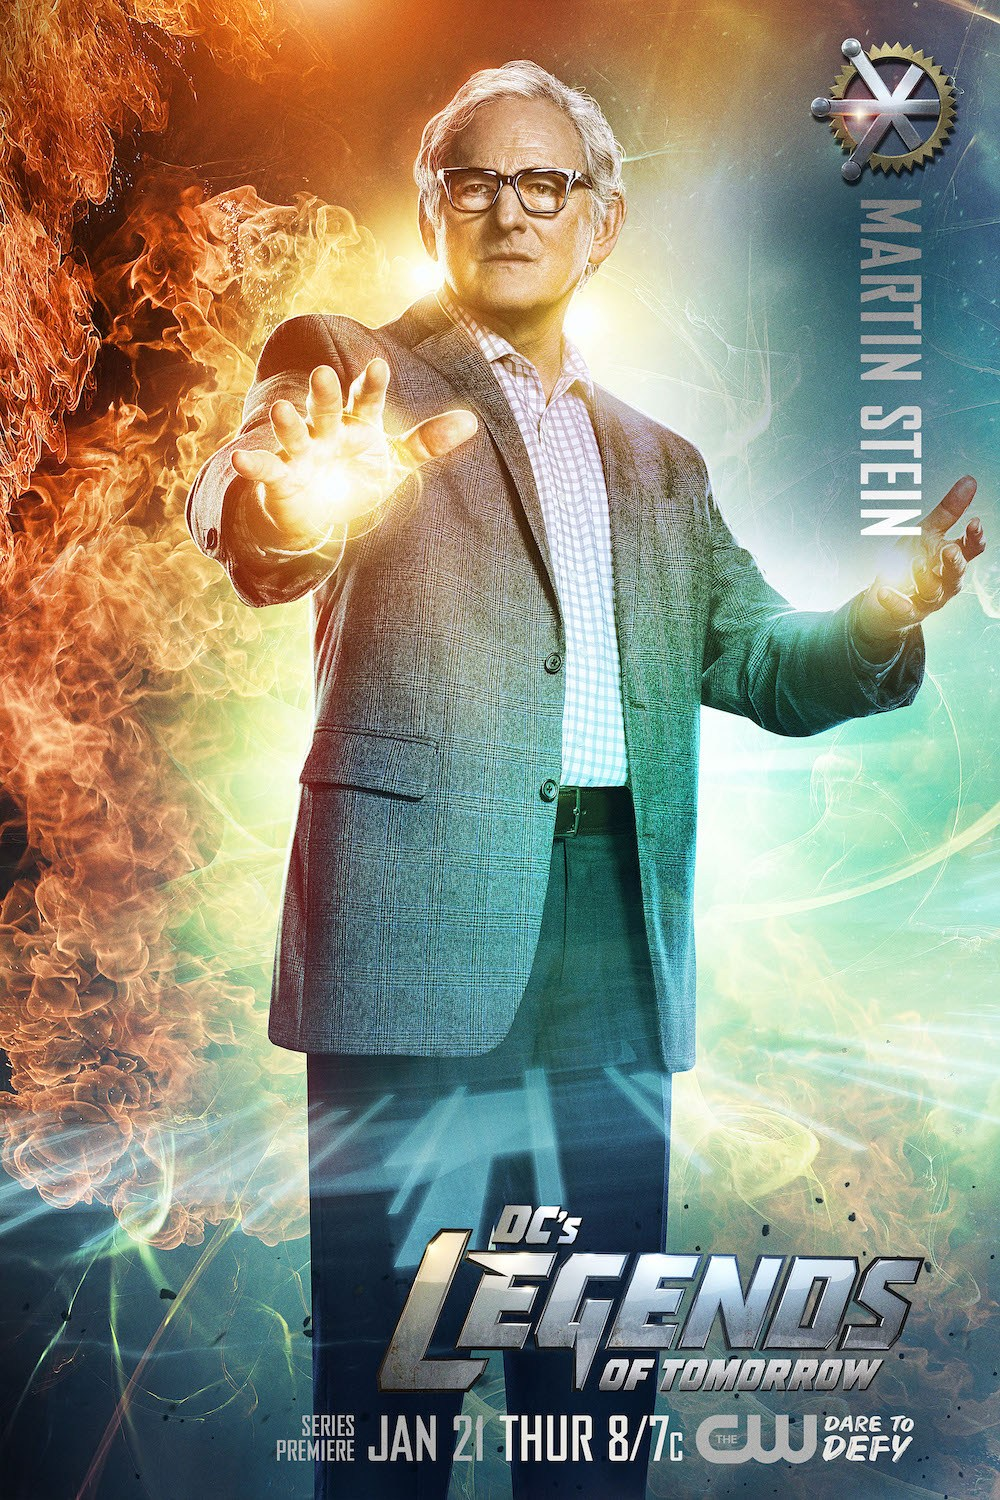 Legends of Tomorrow - Professor Martin Stein played by Victor Garber